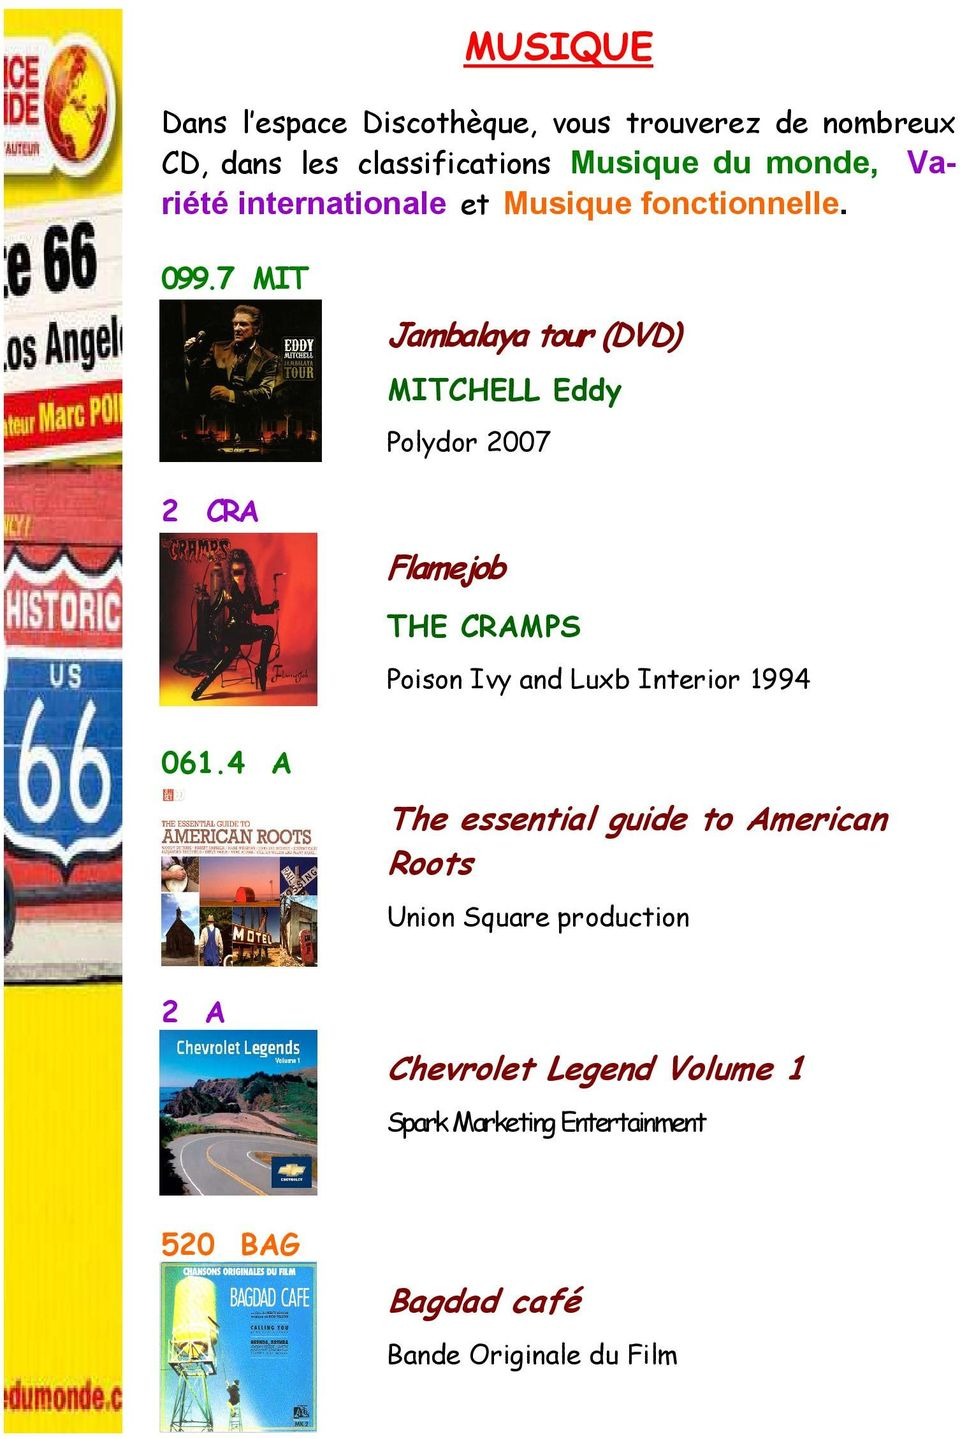 7 MIT 2 CRA Jambalaya tour (DVD) MITCHELL Eddy Polydor 2007 Flamejob Flamejob THE CRAMPS Poison Ivy and Luxb